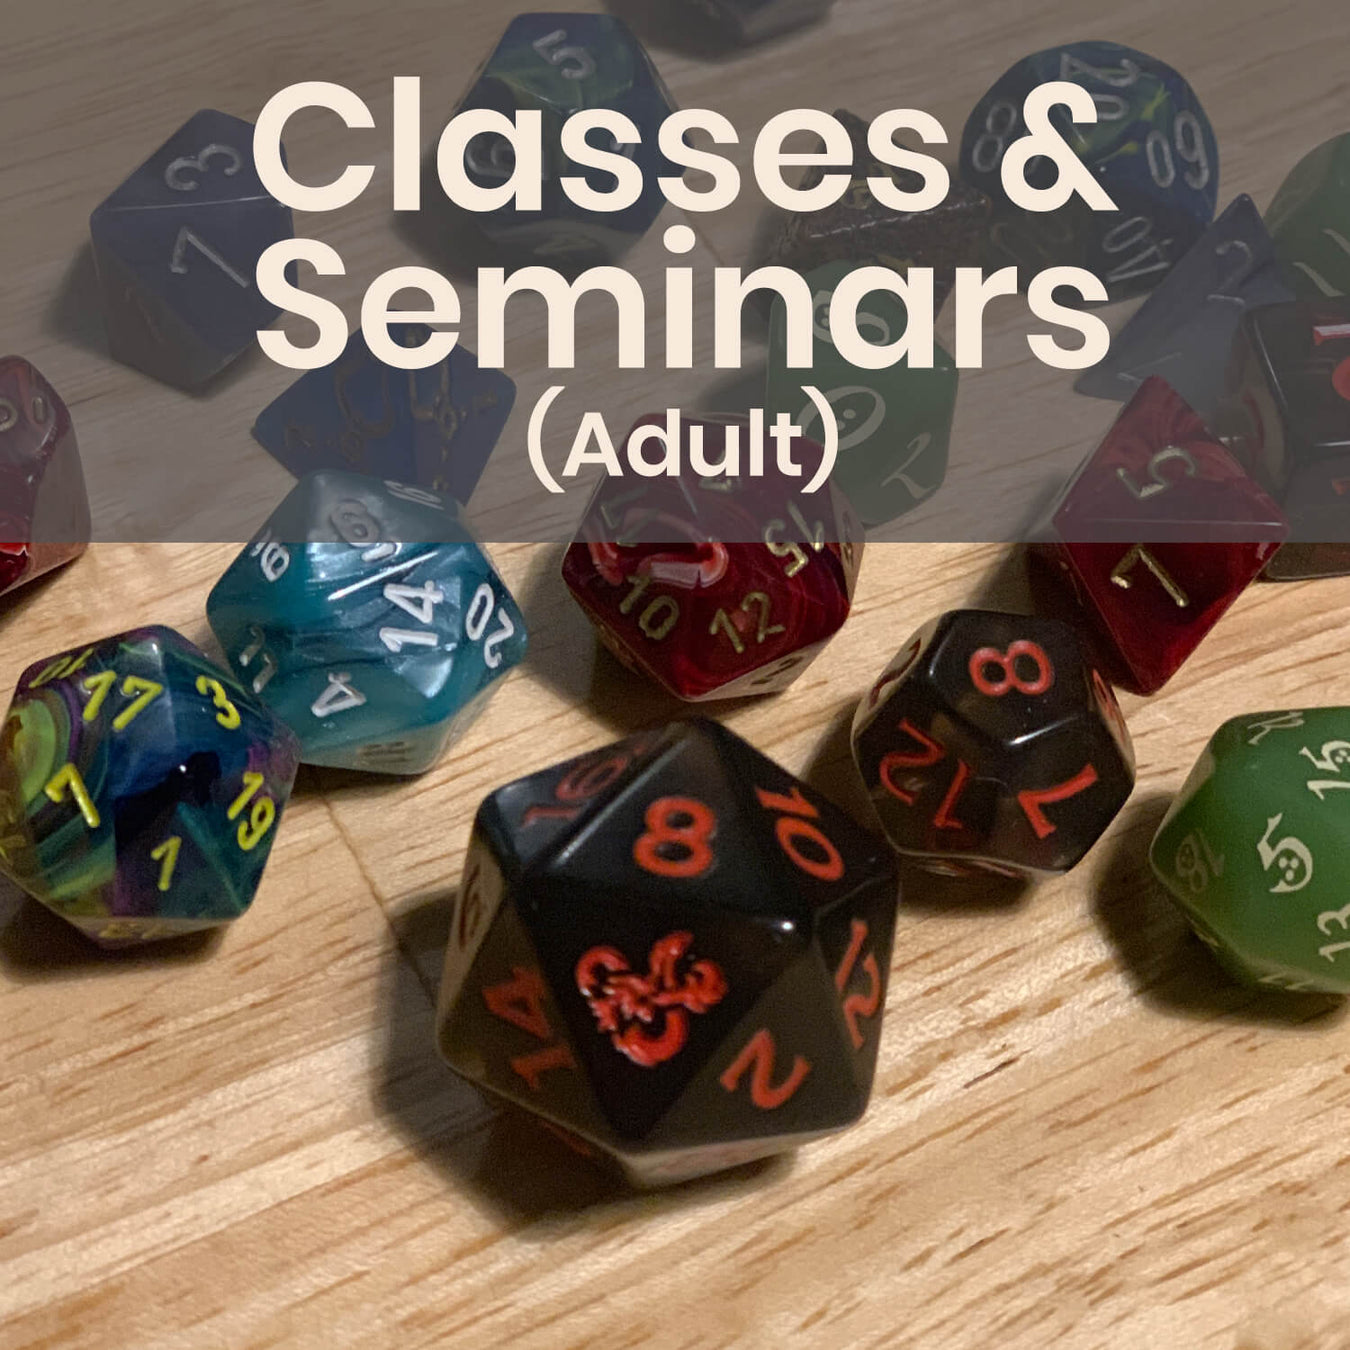 Classes & Seminars